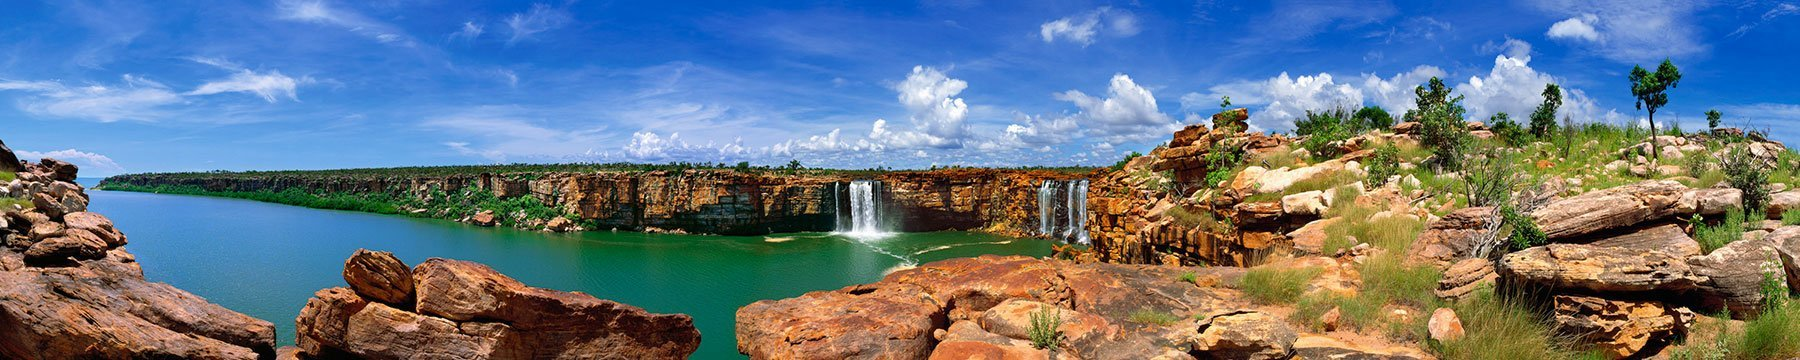 A 220 degree view of Glycosmis Falls, Kimberleys, WA, Australia.